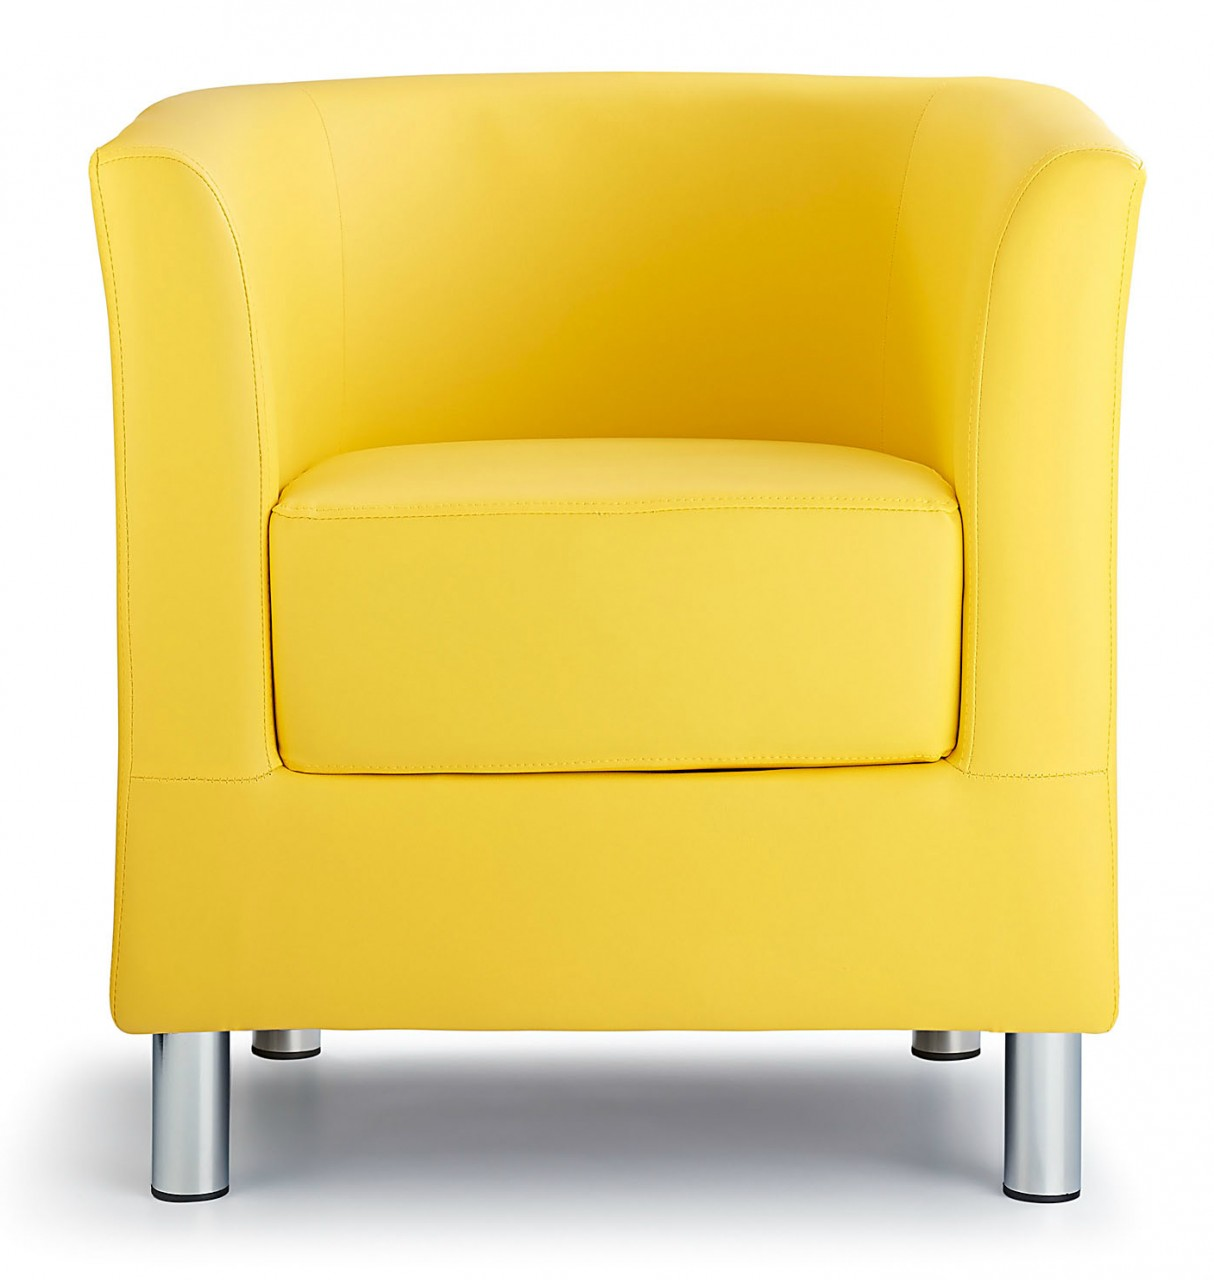 Designer Tub Chair Yellow